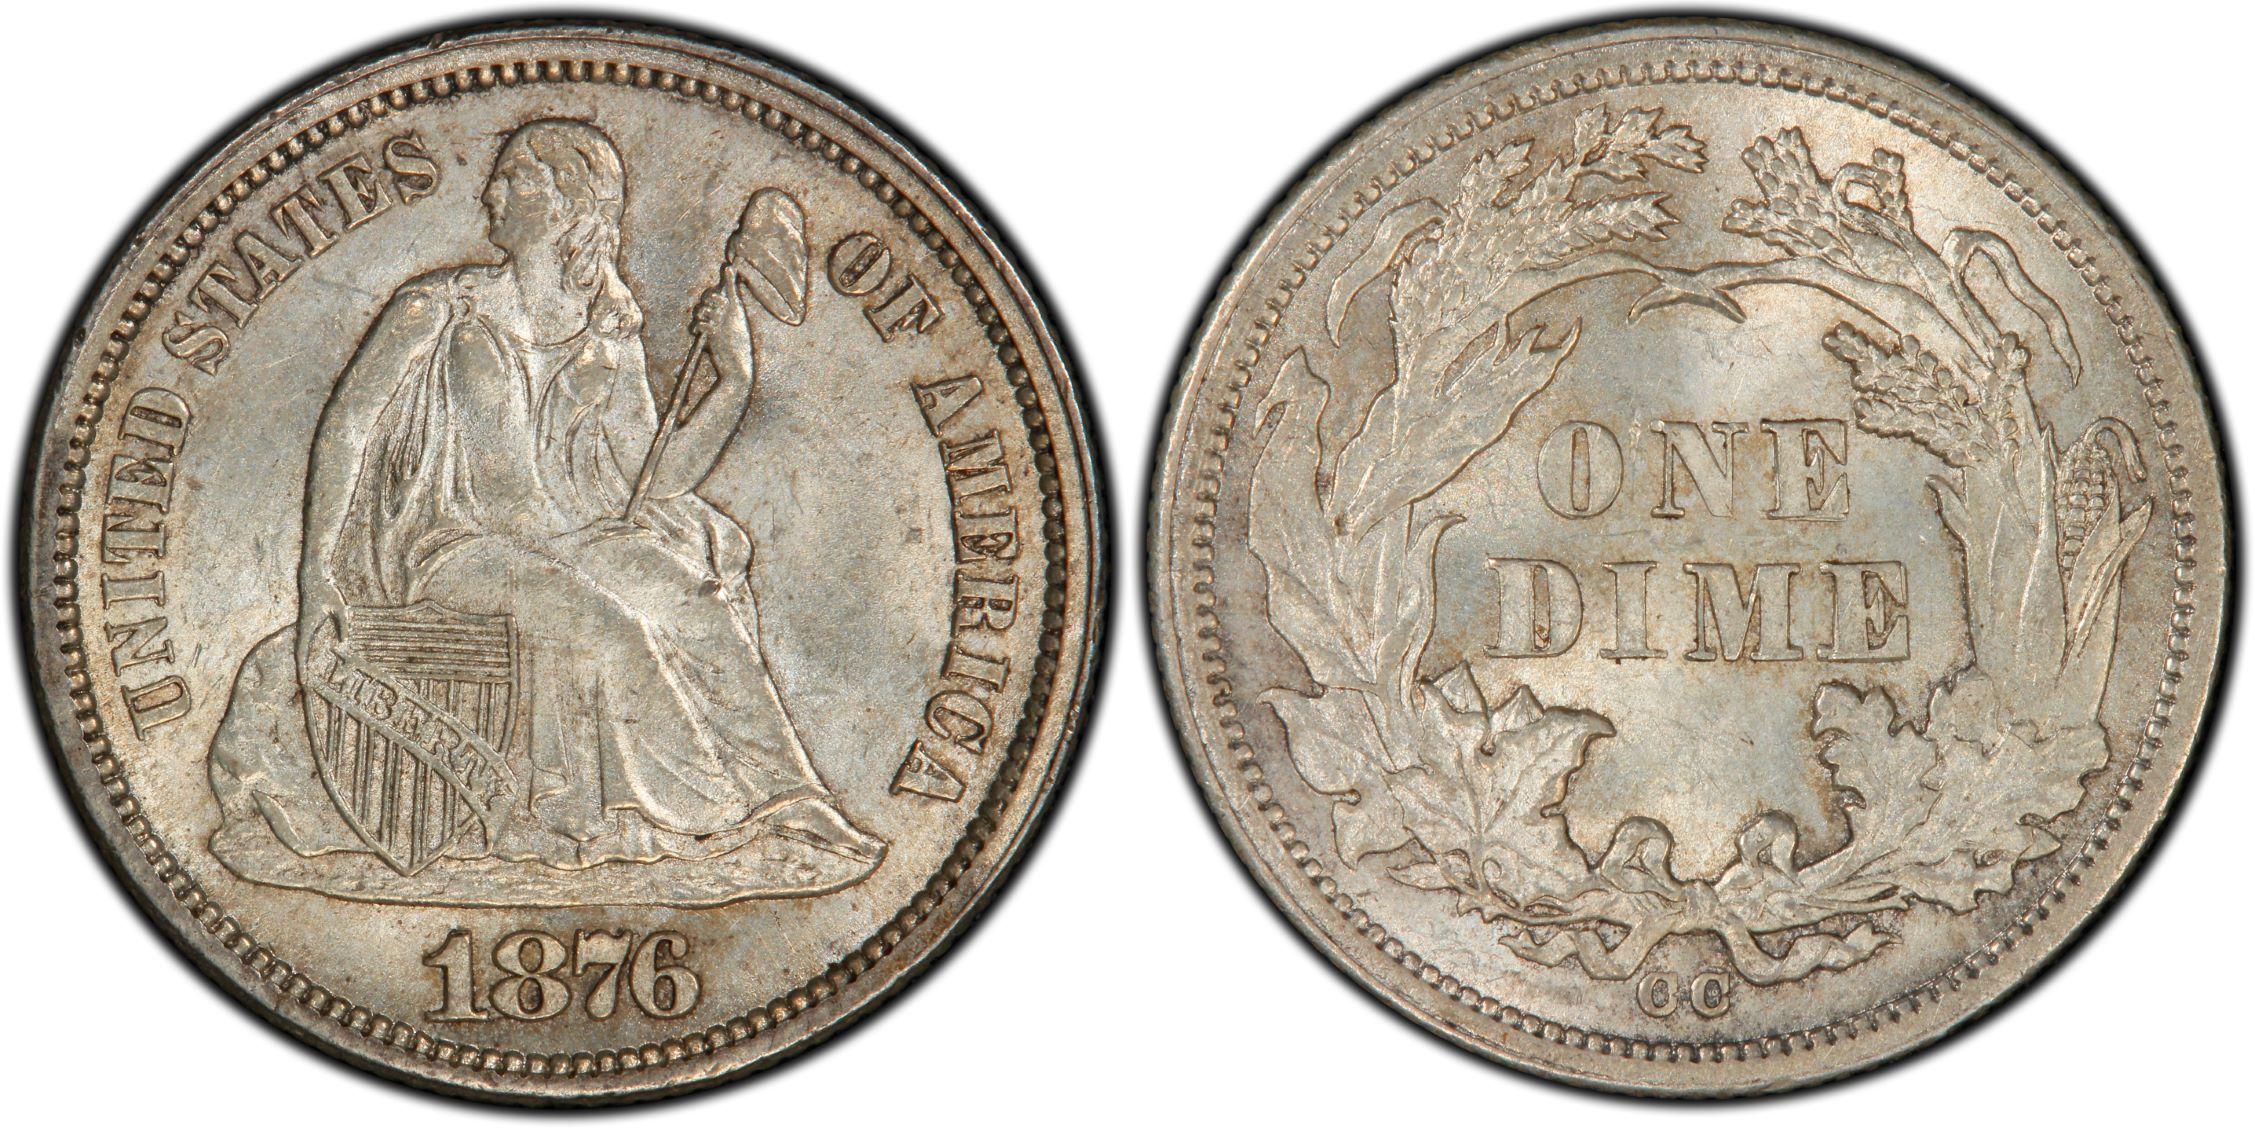 GFRC Open Set Registry - Coulombe Family 1876 Seated  10C